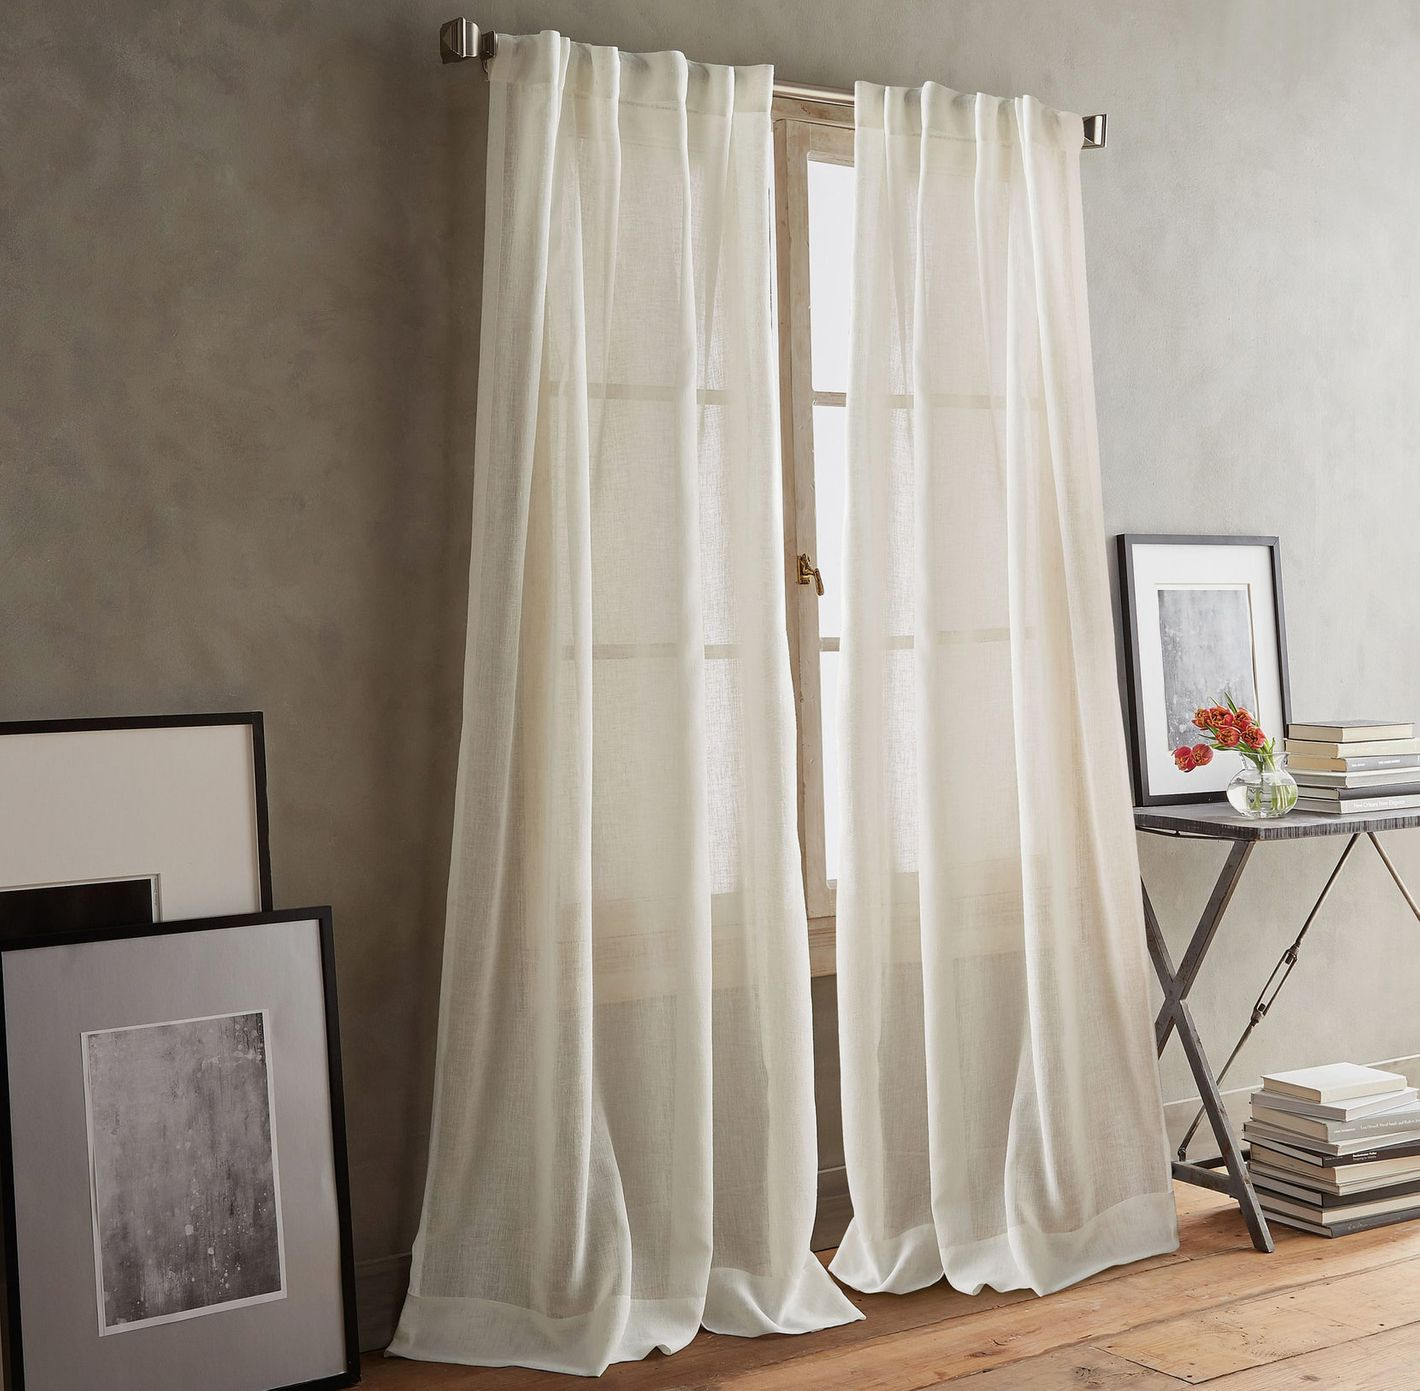 23 Best Curtains Shades Blinds Reviewed By Designers 2018 Ways To Add Lighting A Closet Without Wiring Apartment Therapy Dkny Paradox Back Tab Window Panels Set Of 2